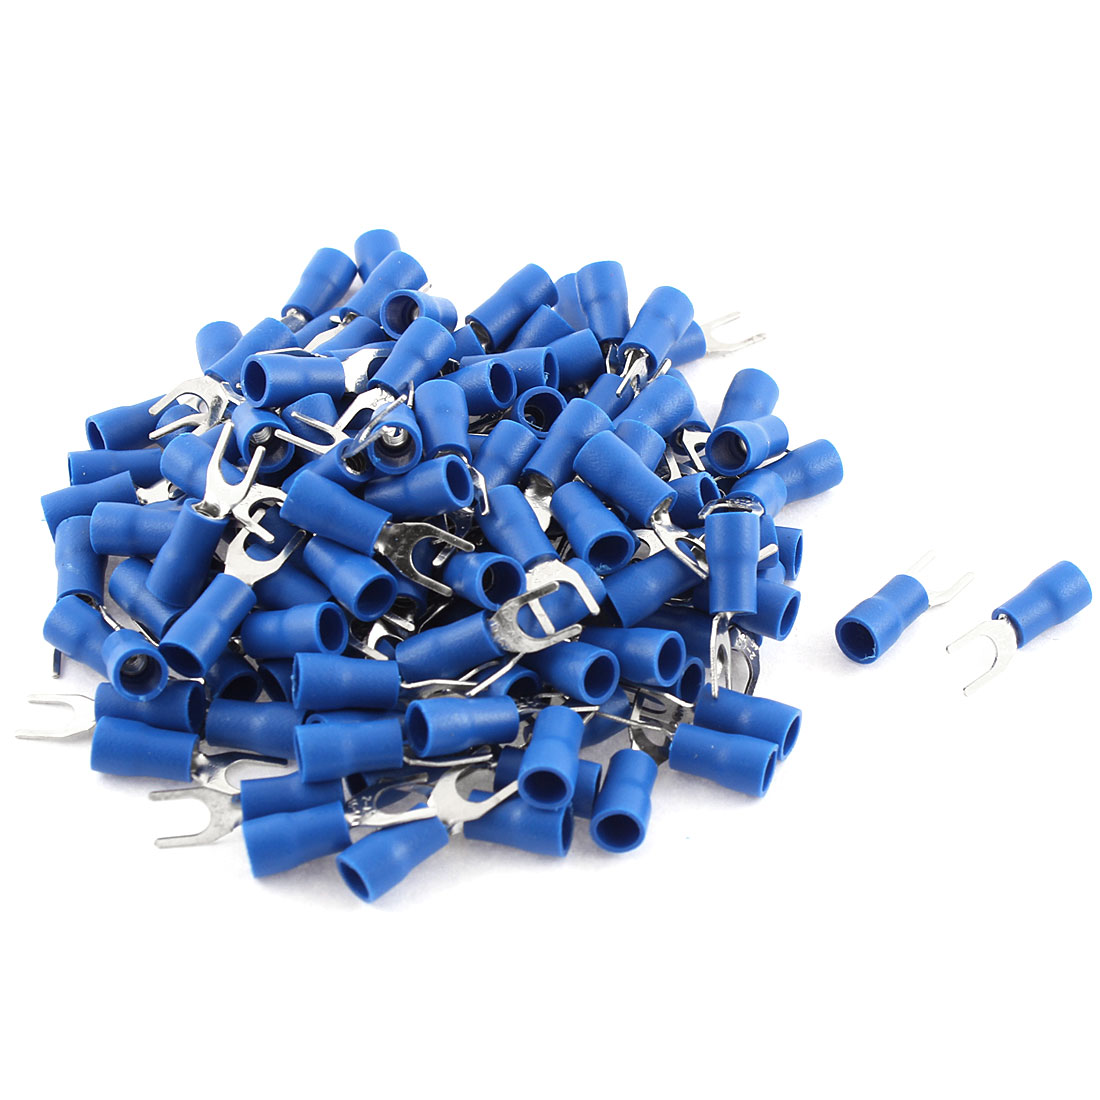 135Pcs SV2-4 Fork Type Blue Insulated Spade Cable Terminals 16-14AWG